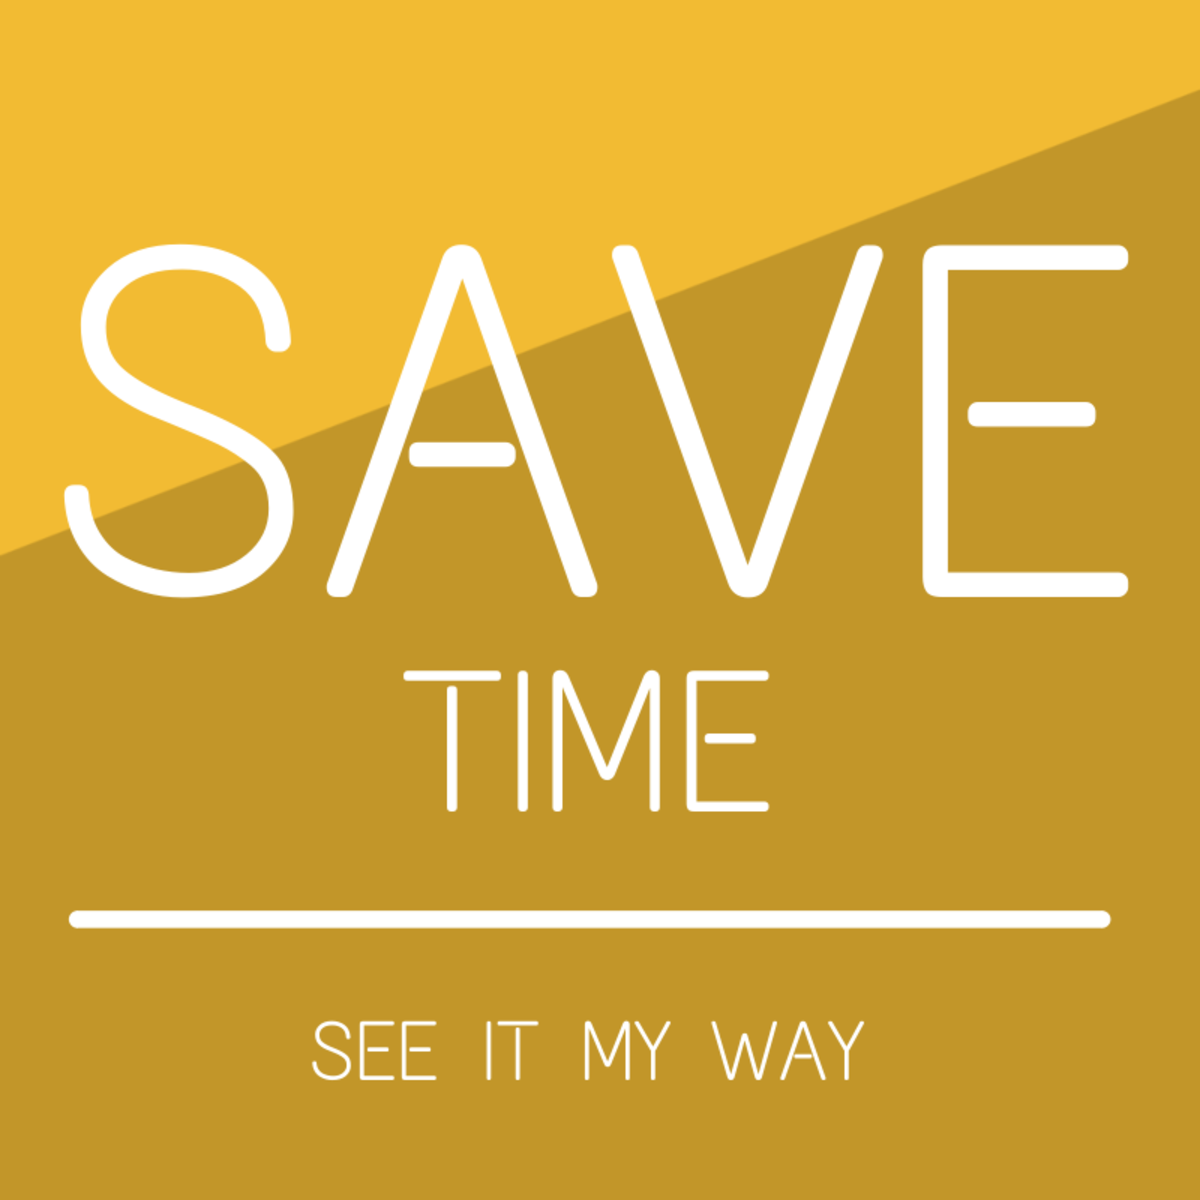 Emails often are trying to convince someone of your point of view. Sign-off with a humorous related message: Save time. See it my way.